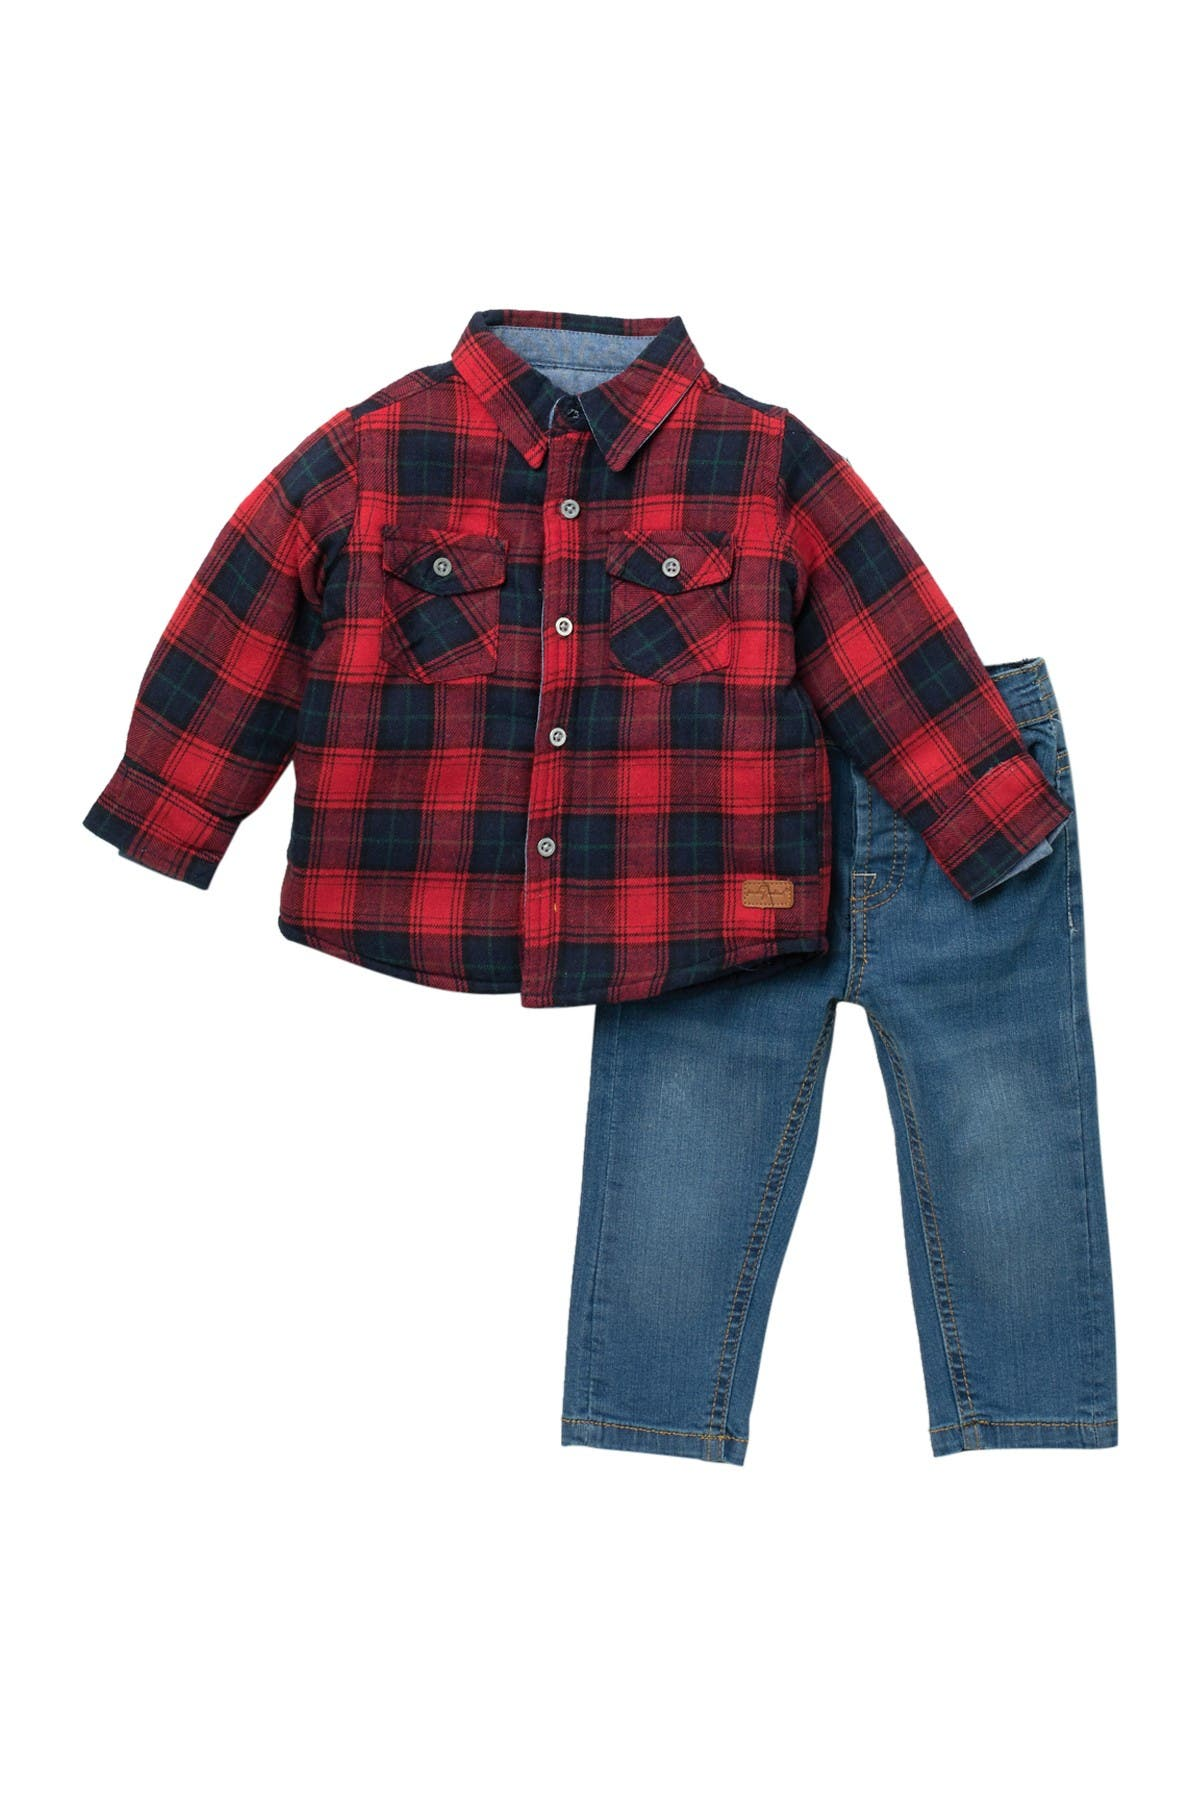 Image of 7 For All Mankind Flannel & Jeans Set